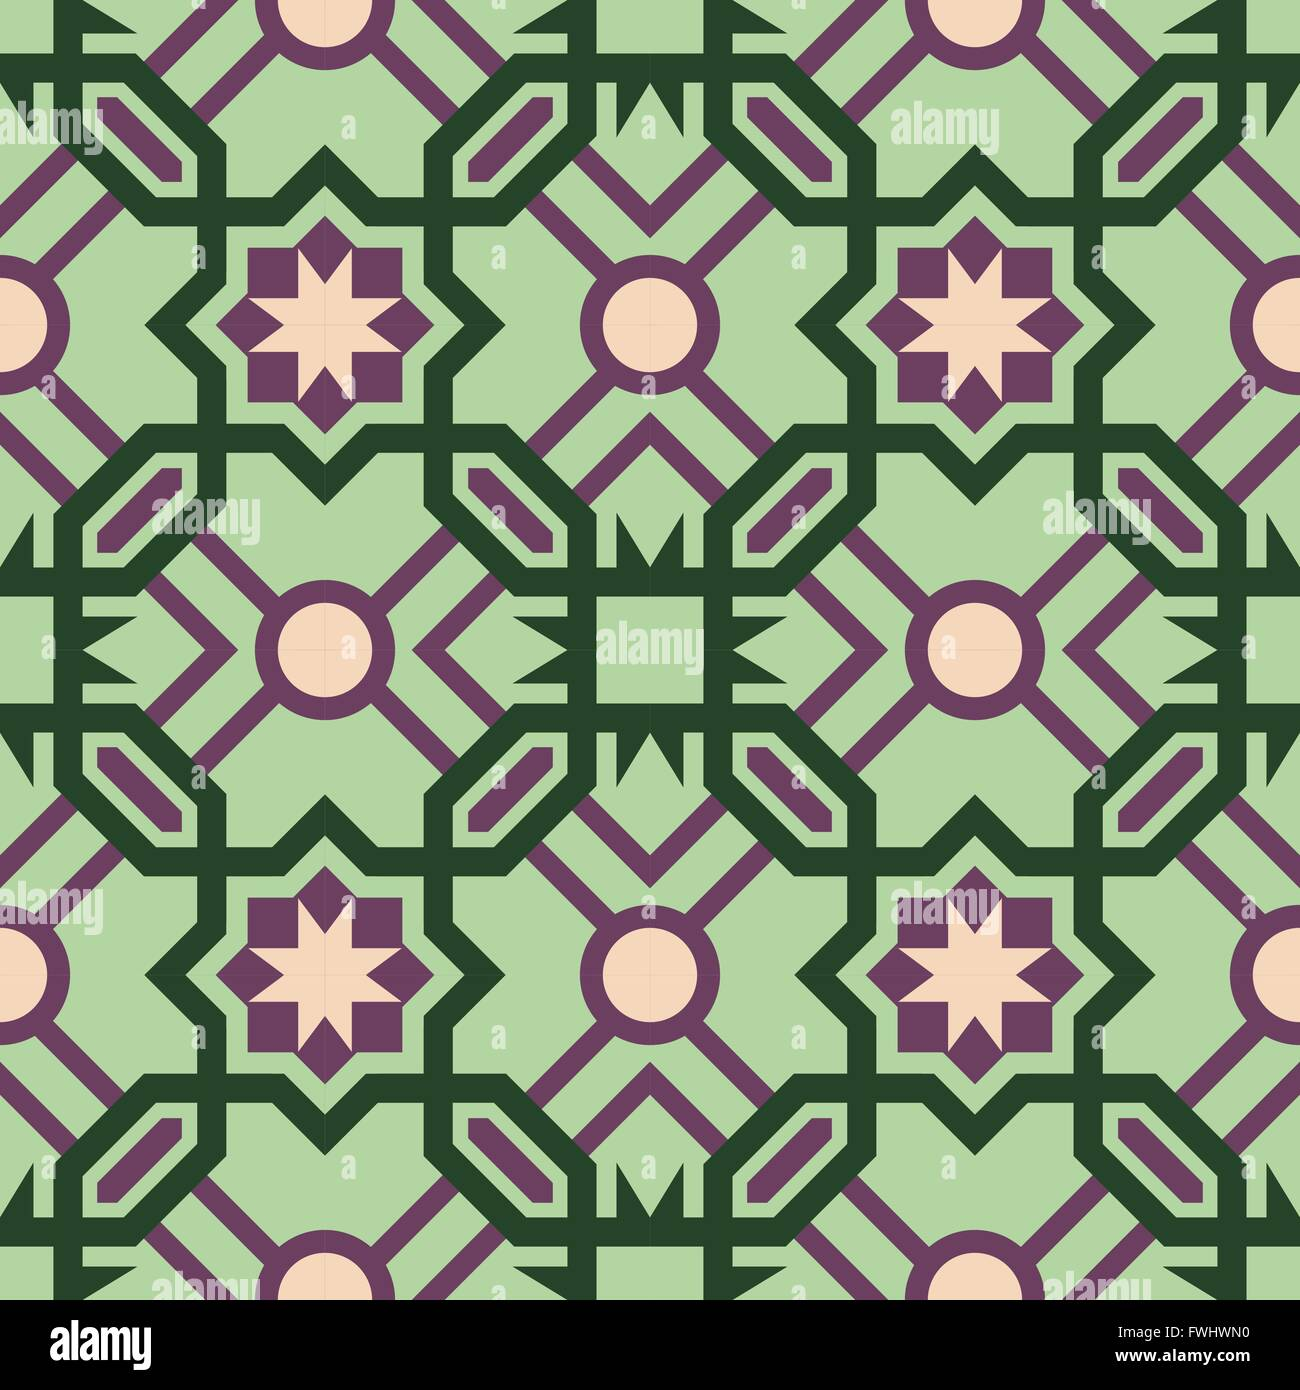 https www alamy com stock photo abstract ceramic mosaic floor tile seamless pattern with geometric 101811612 html